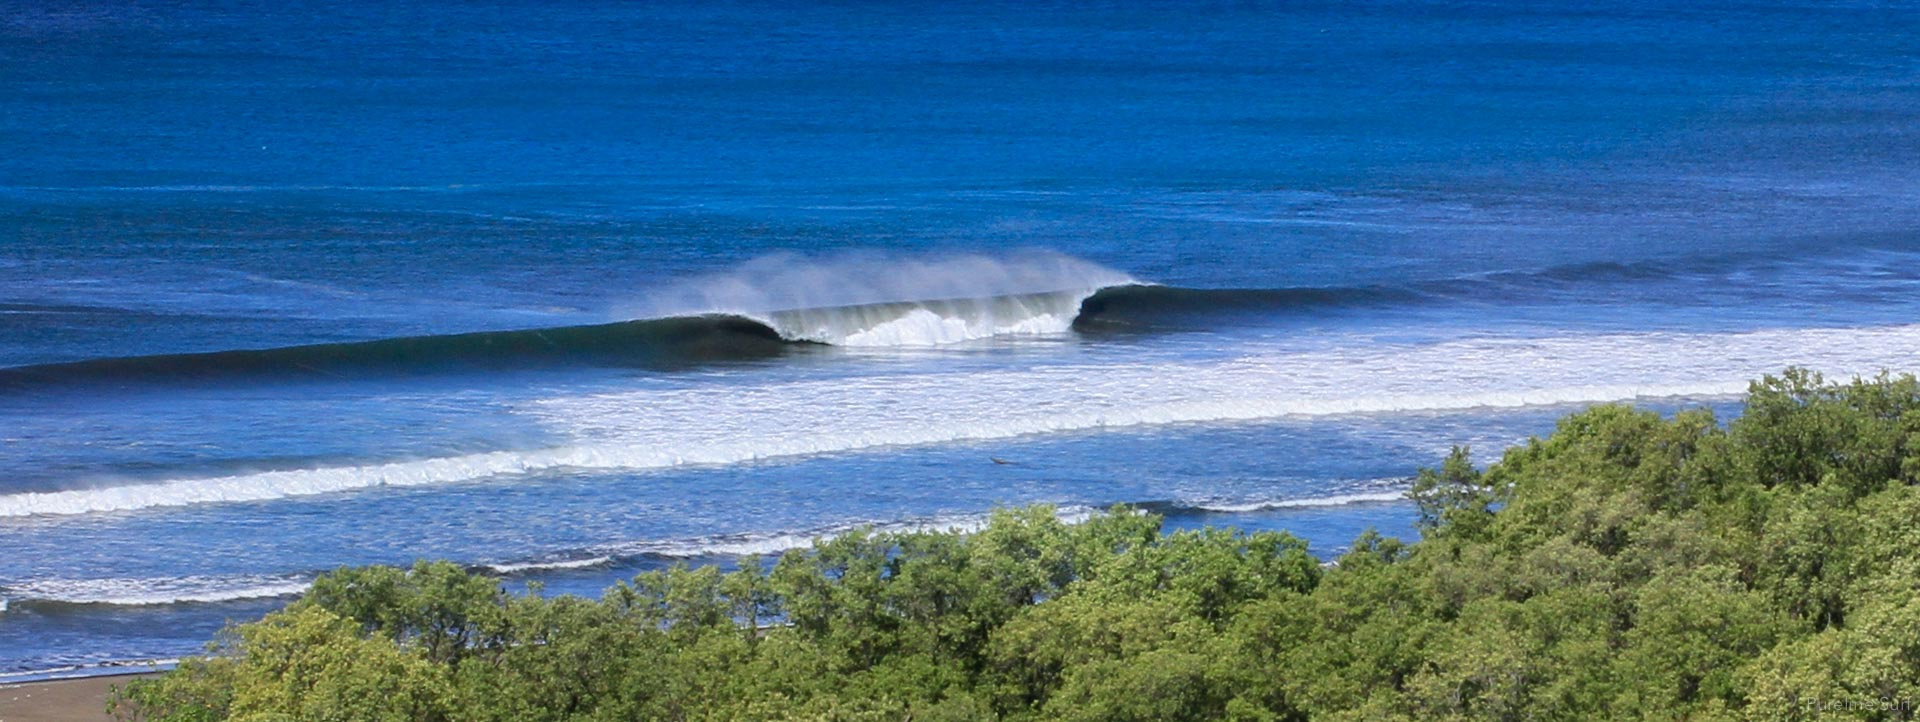 Aerial photograph of an offshore peeling a-frame wave found in Nosara, Costa Rica; one of the locations where Pureline Surf offers customized private surf lessons.